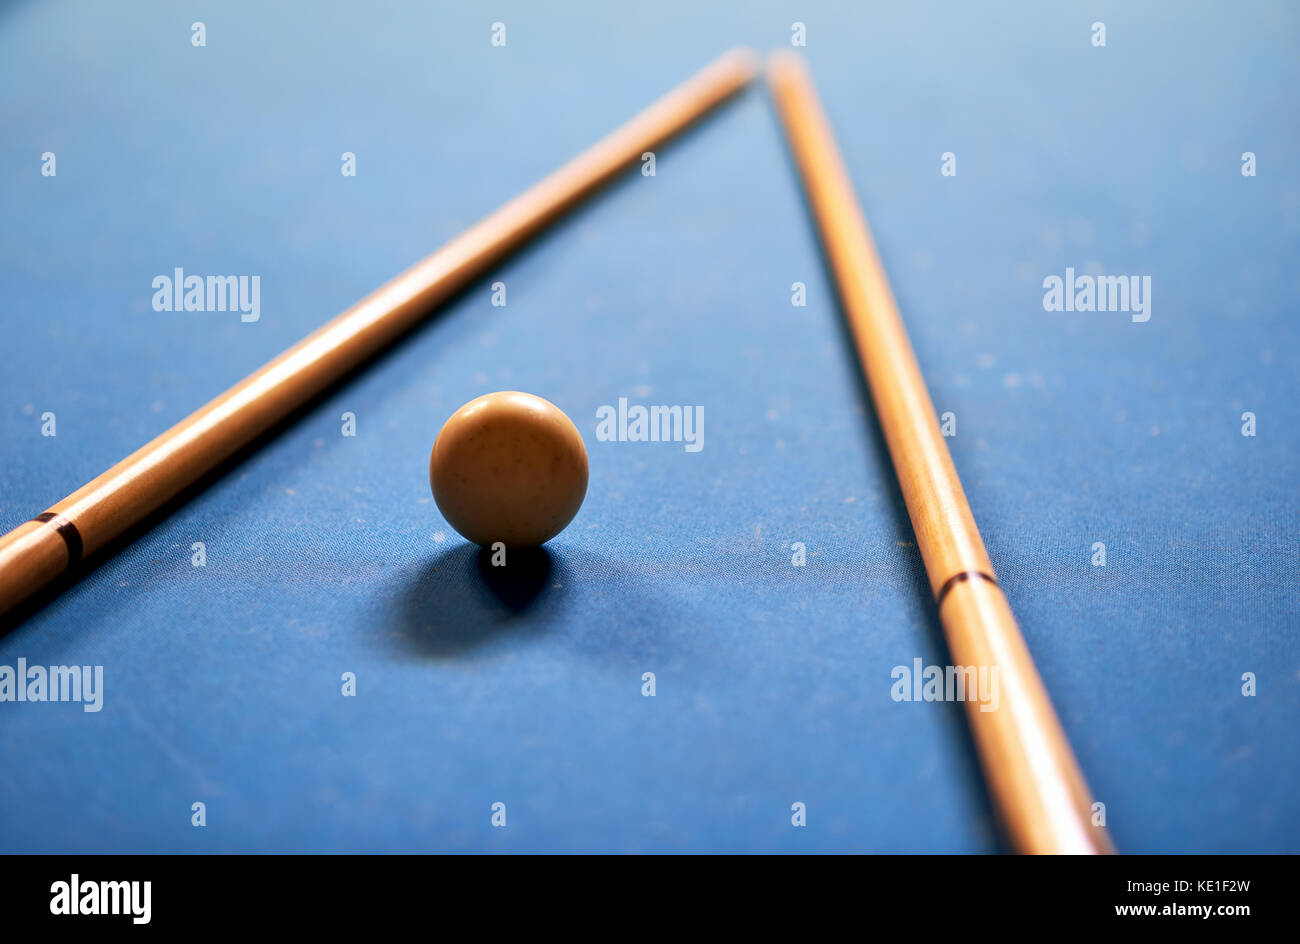 Billiard ball in a blue pool table - Stock Image